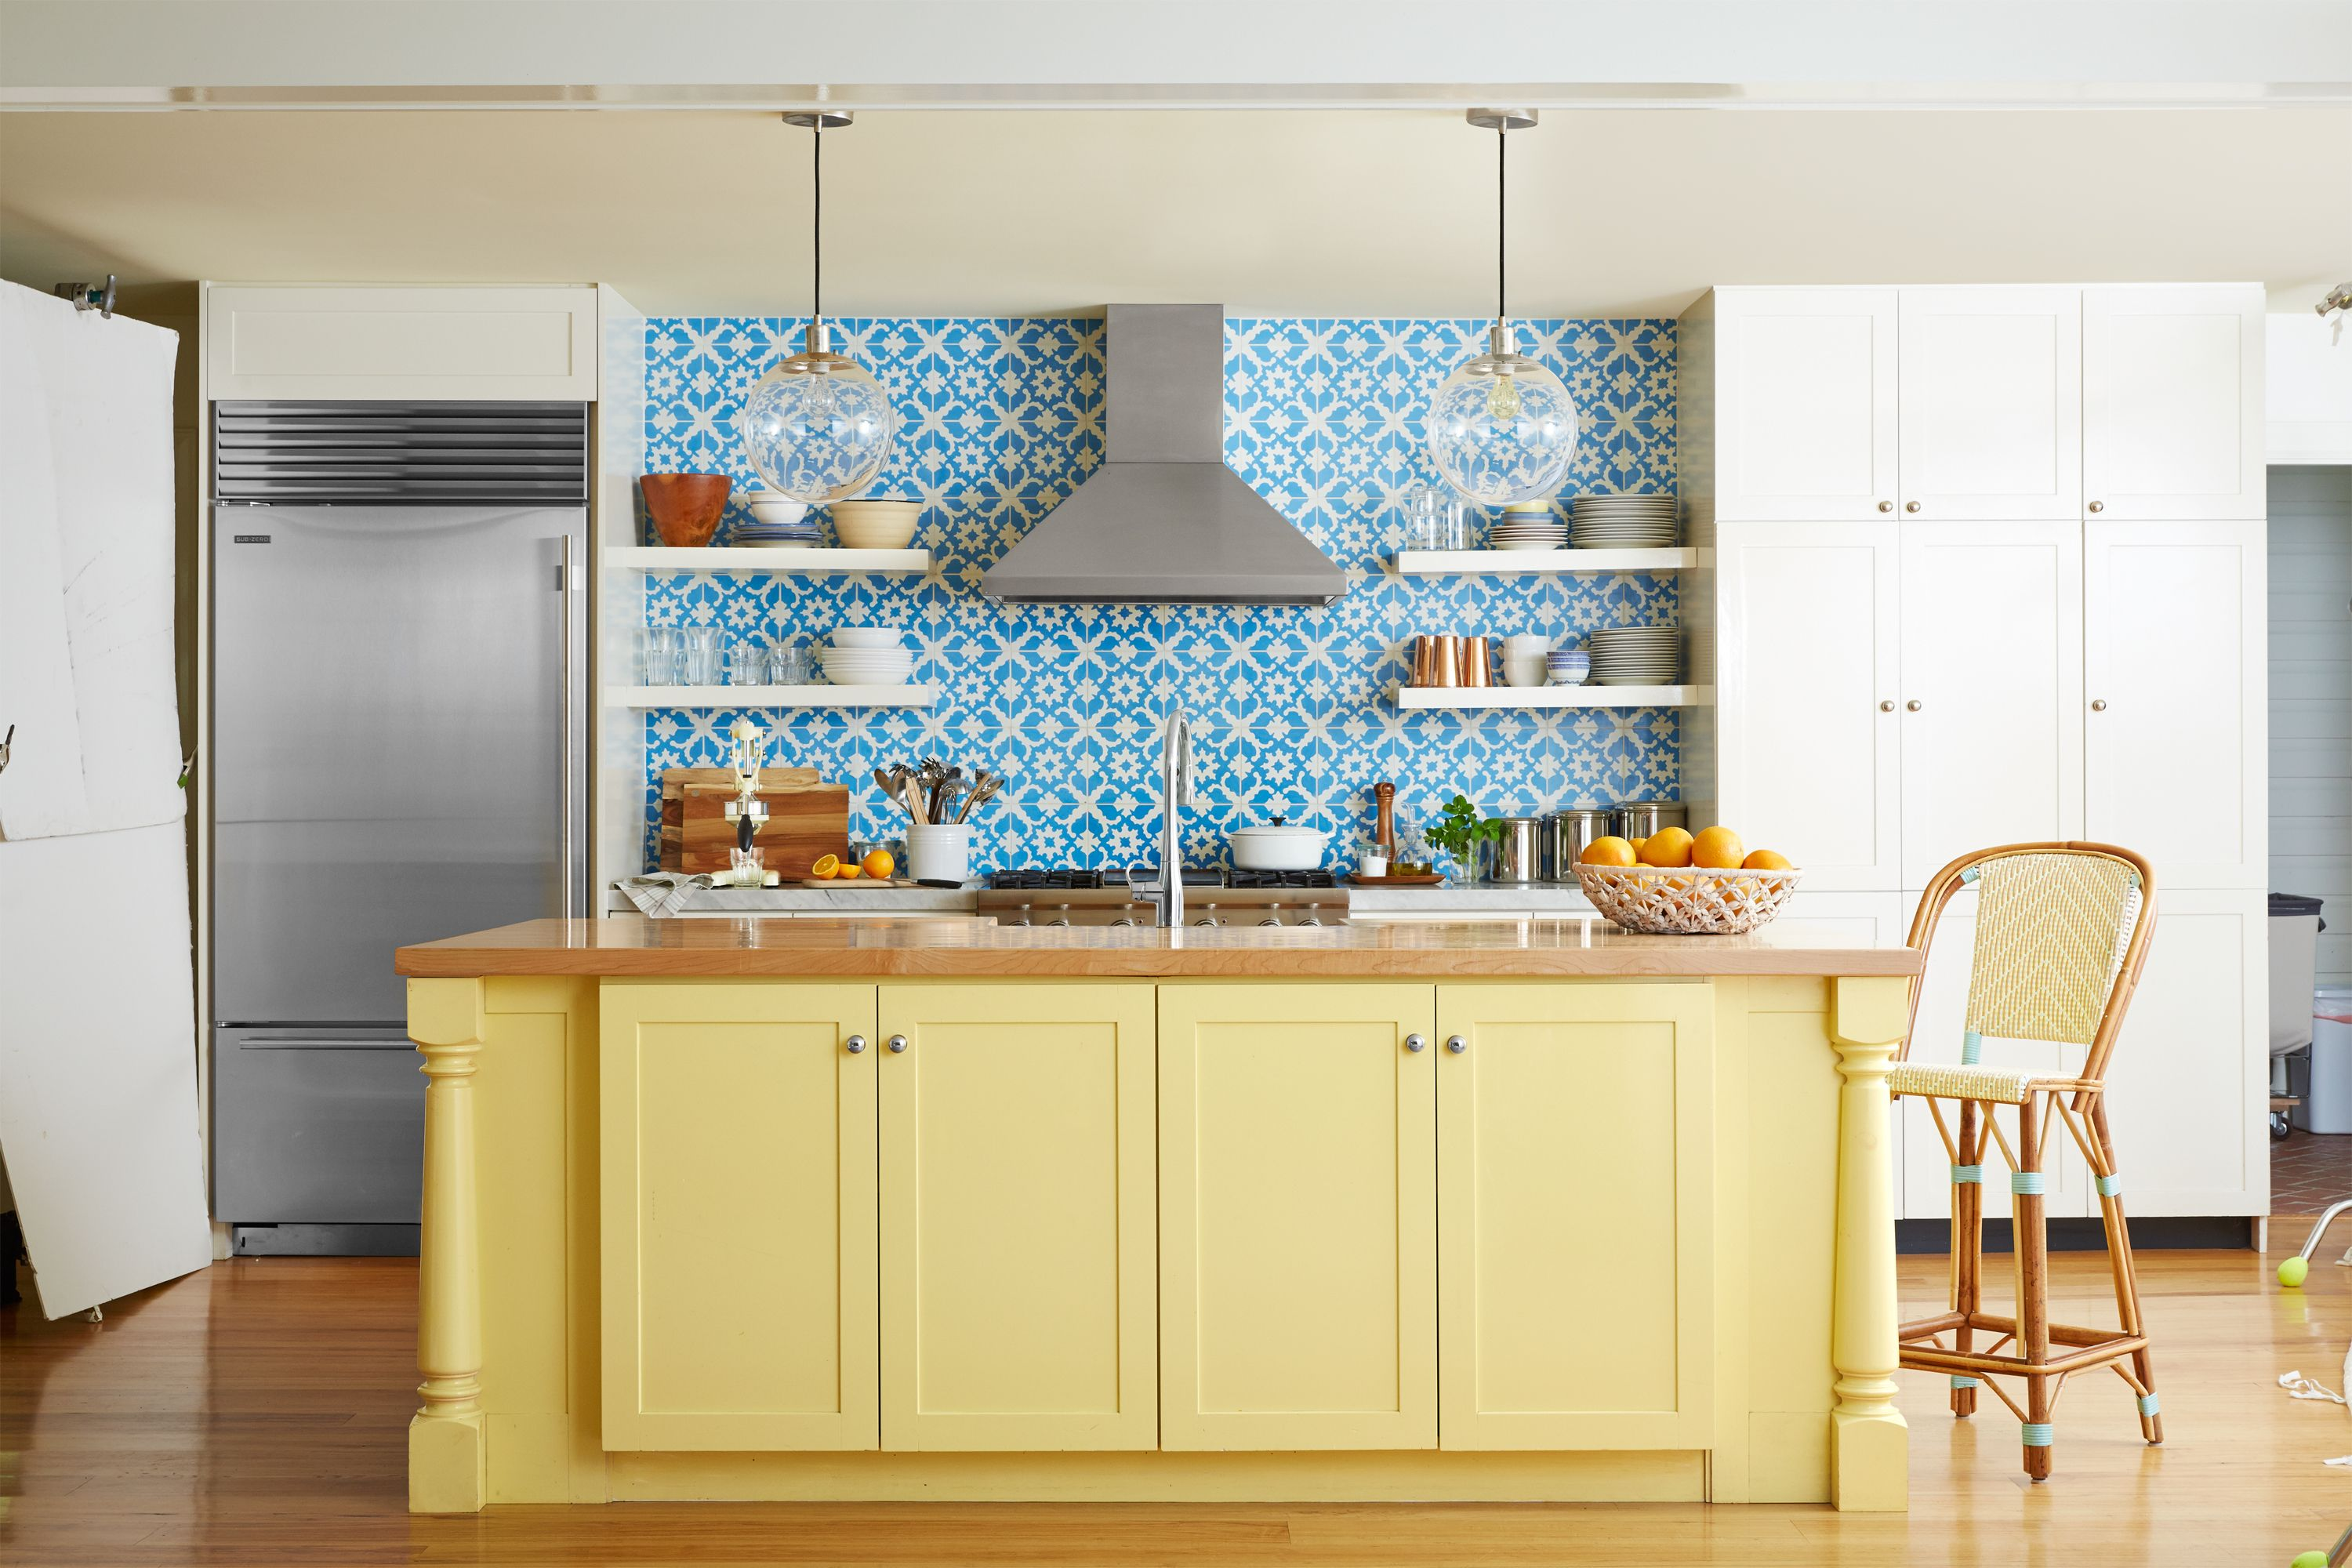 15+ Ways to Add Color to Your Kitchen | Blue tiles, Kitchens and ...